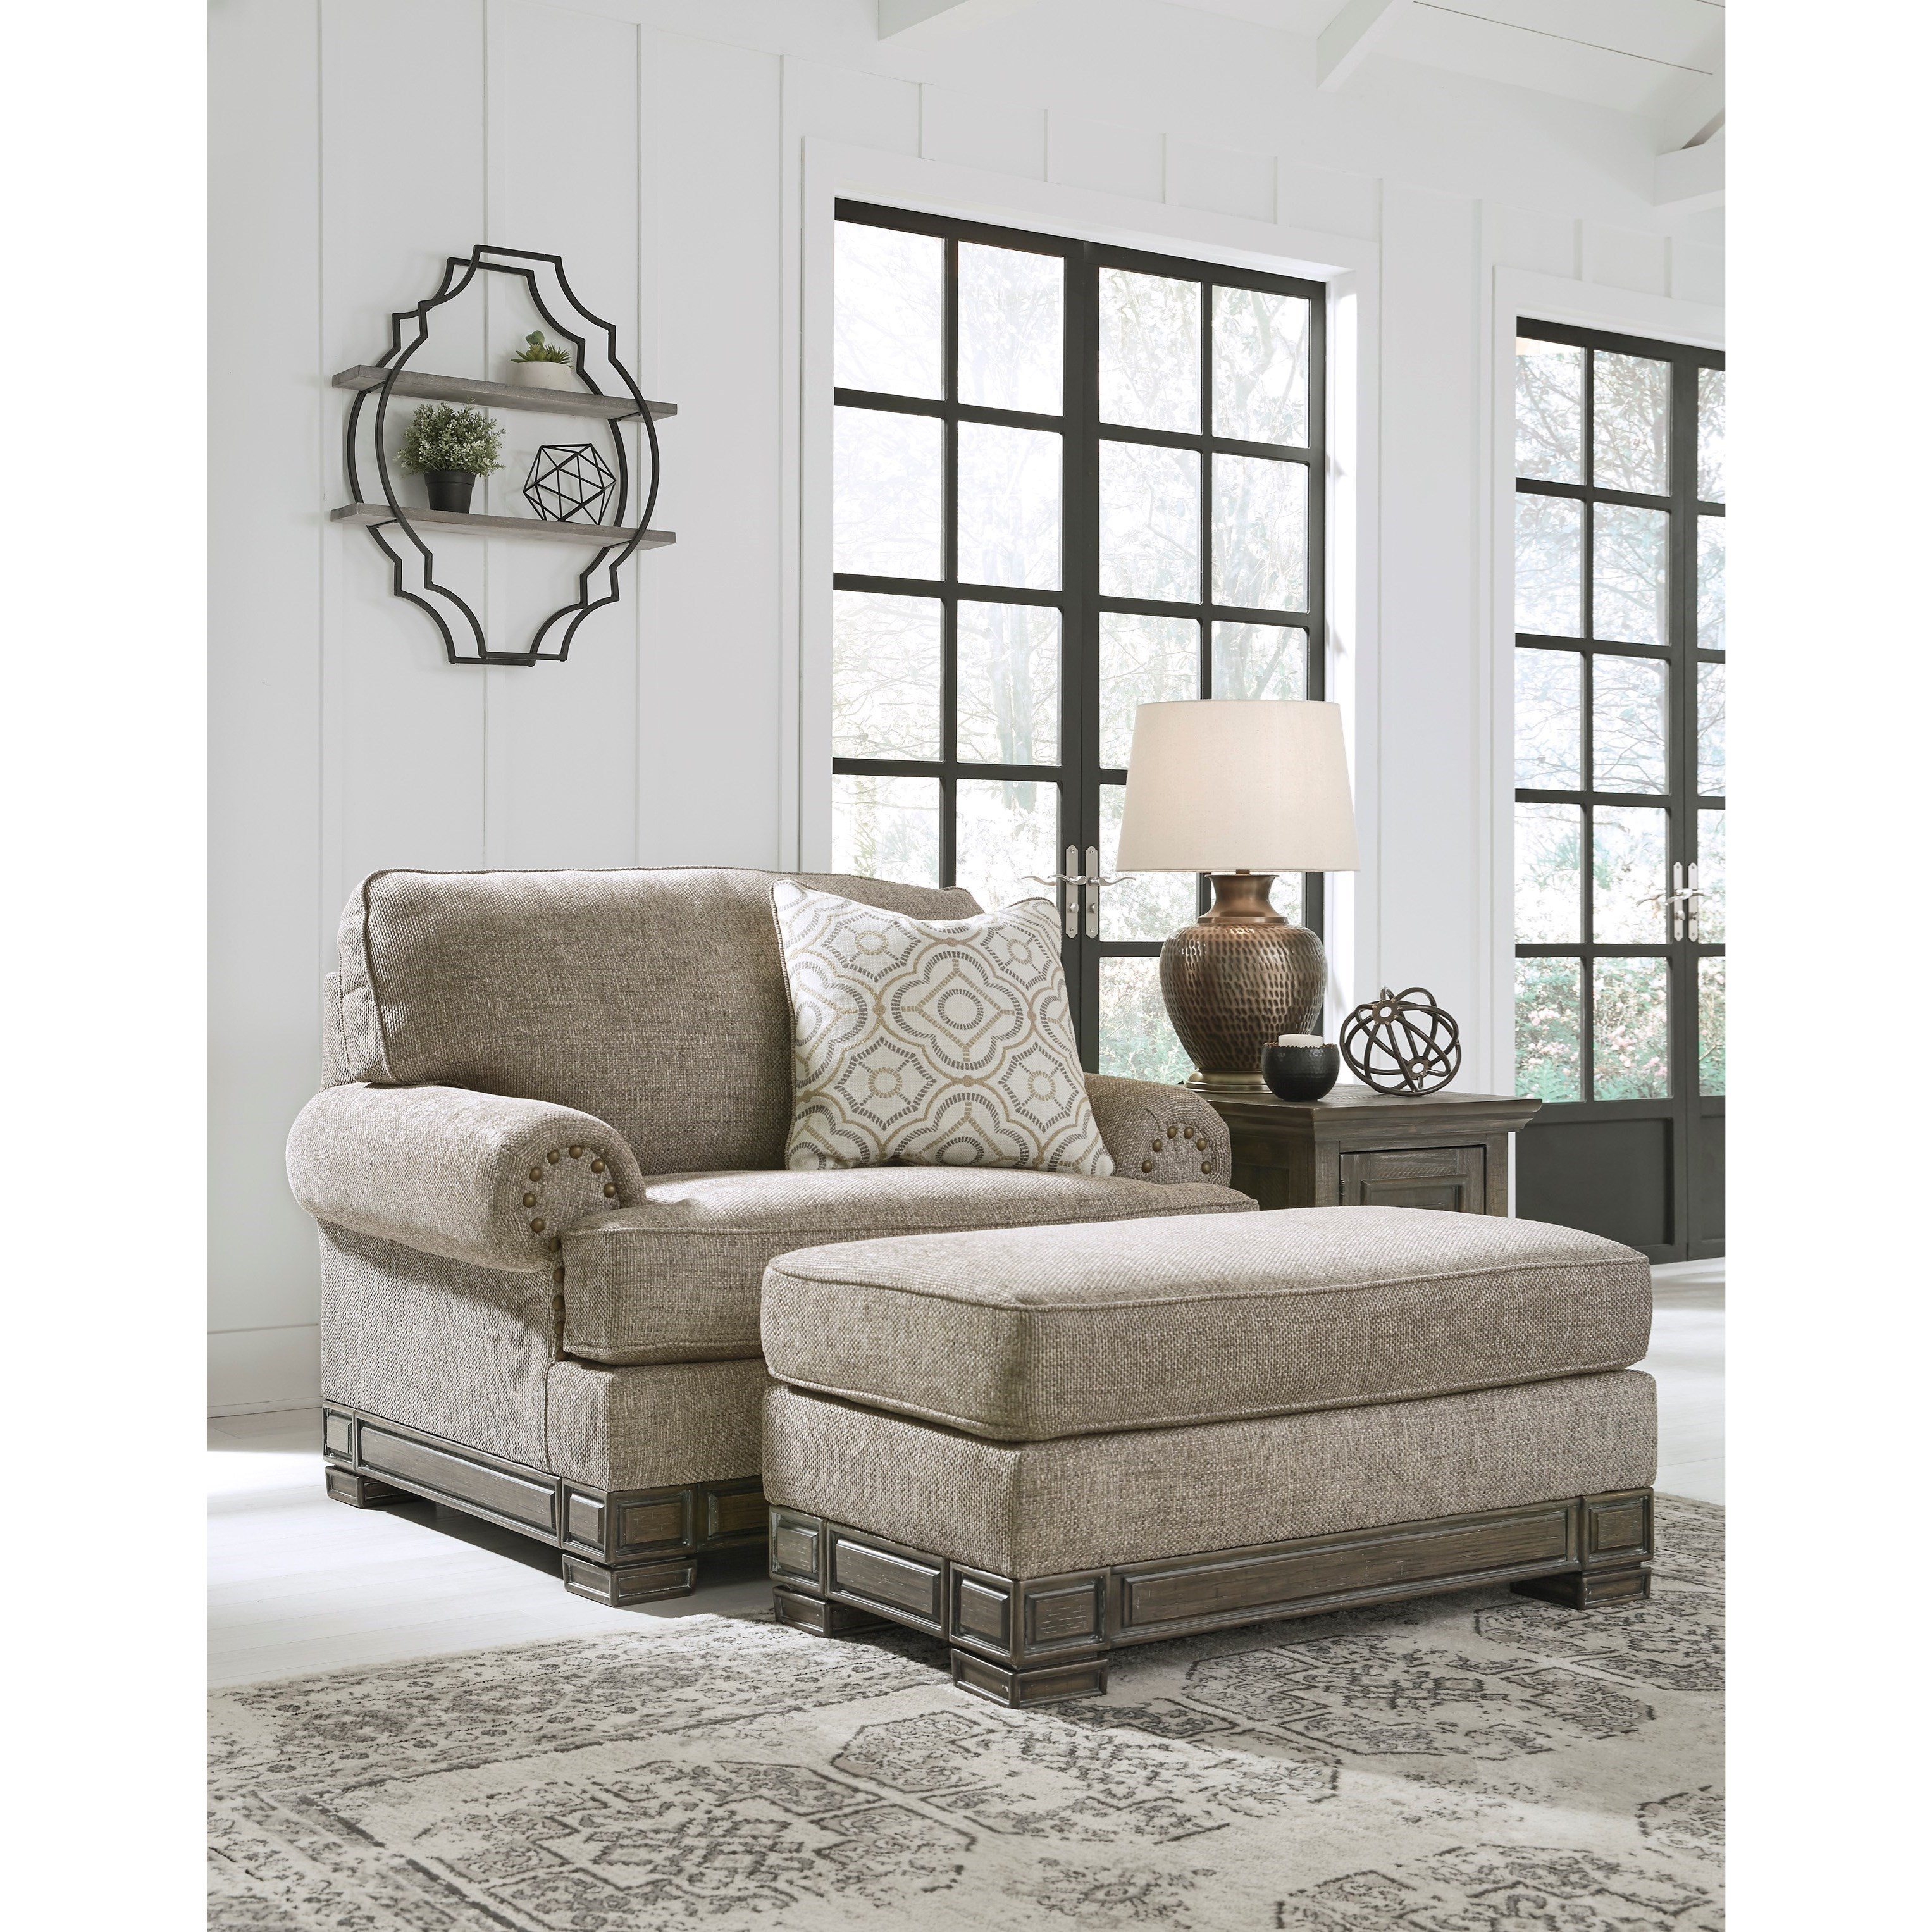 Einsgrove Chair and a Half with Ottoman by Signature at Walker's Furniture